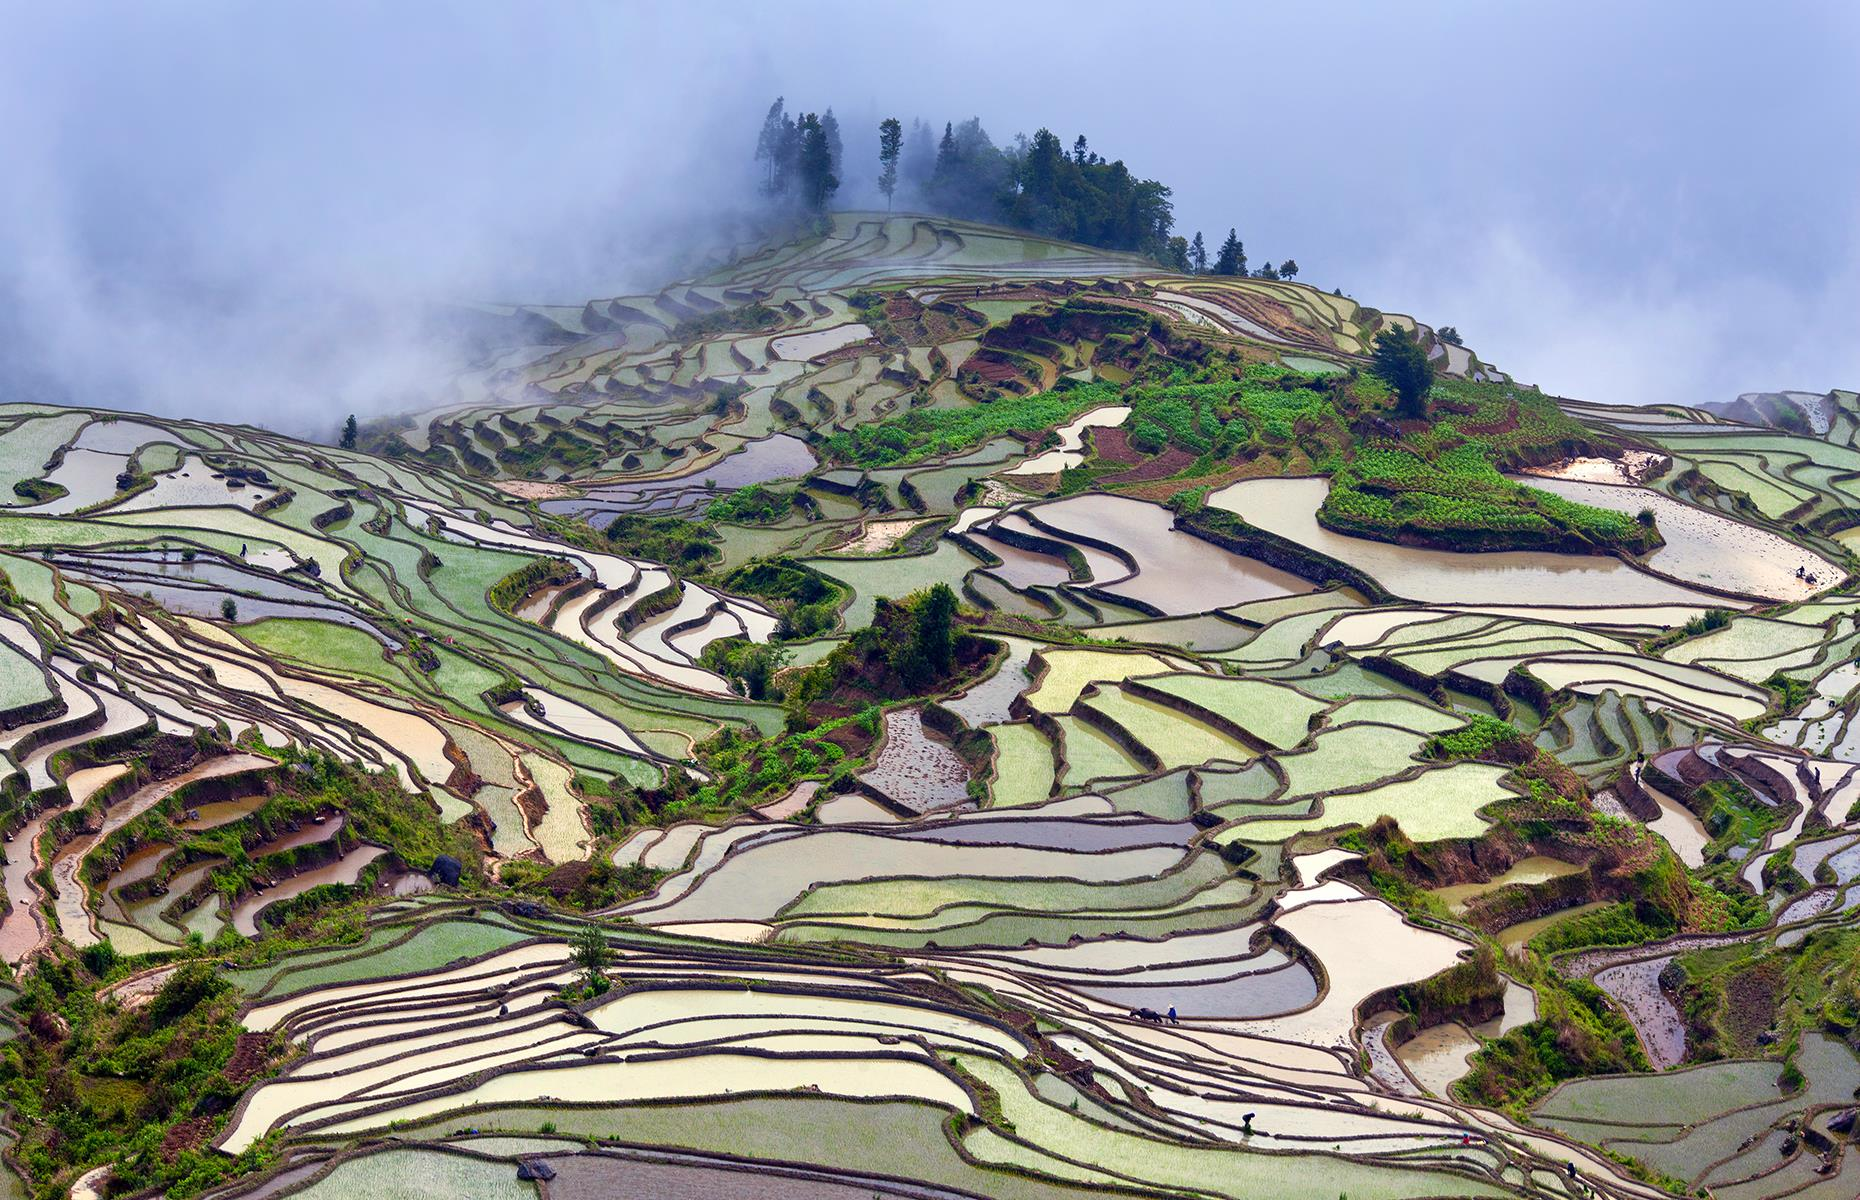 Slide 5 of 43: These vibrant rice terraces in China's Yuanyang County have been a UNESCO World Heritage Site since 2013 and no wonder. Built on red-soil mountains over 2,500 years ago and reaching up to 6,561 feet (1,999m) above sea level, the rice terraces fill with cascading spring water from the forests above, creating a unique scenery in shades of green and brown.